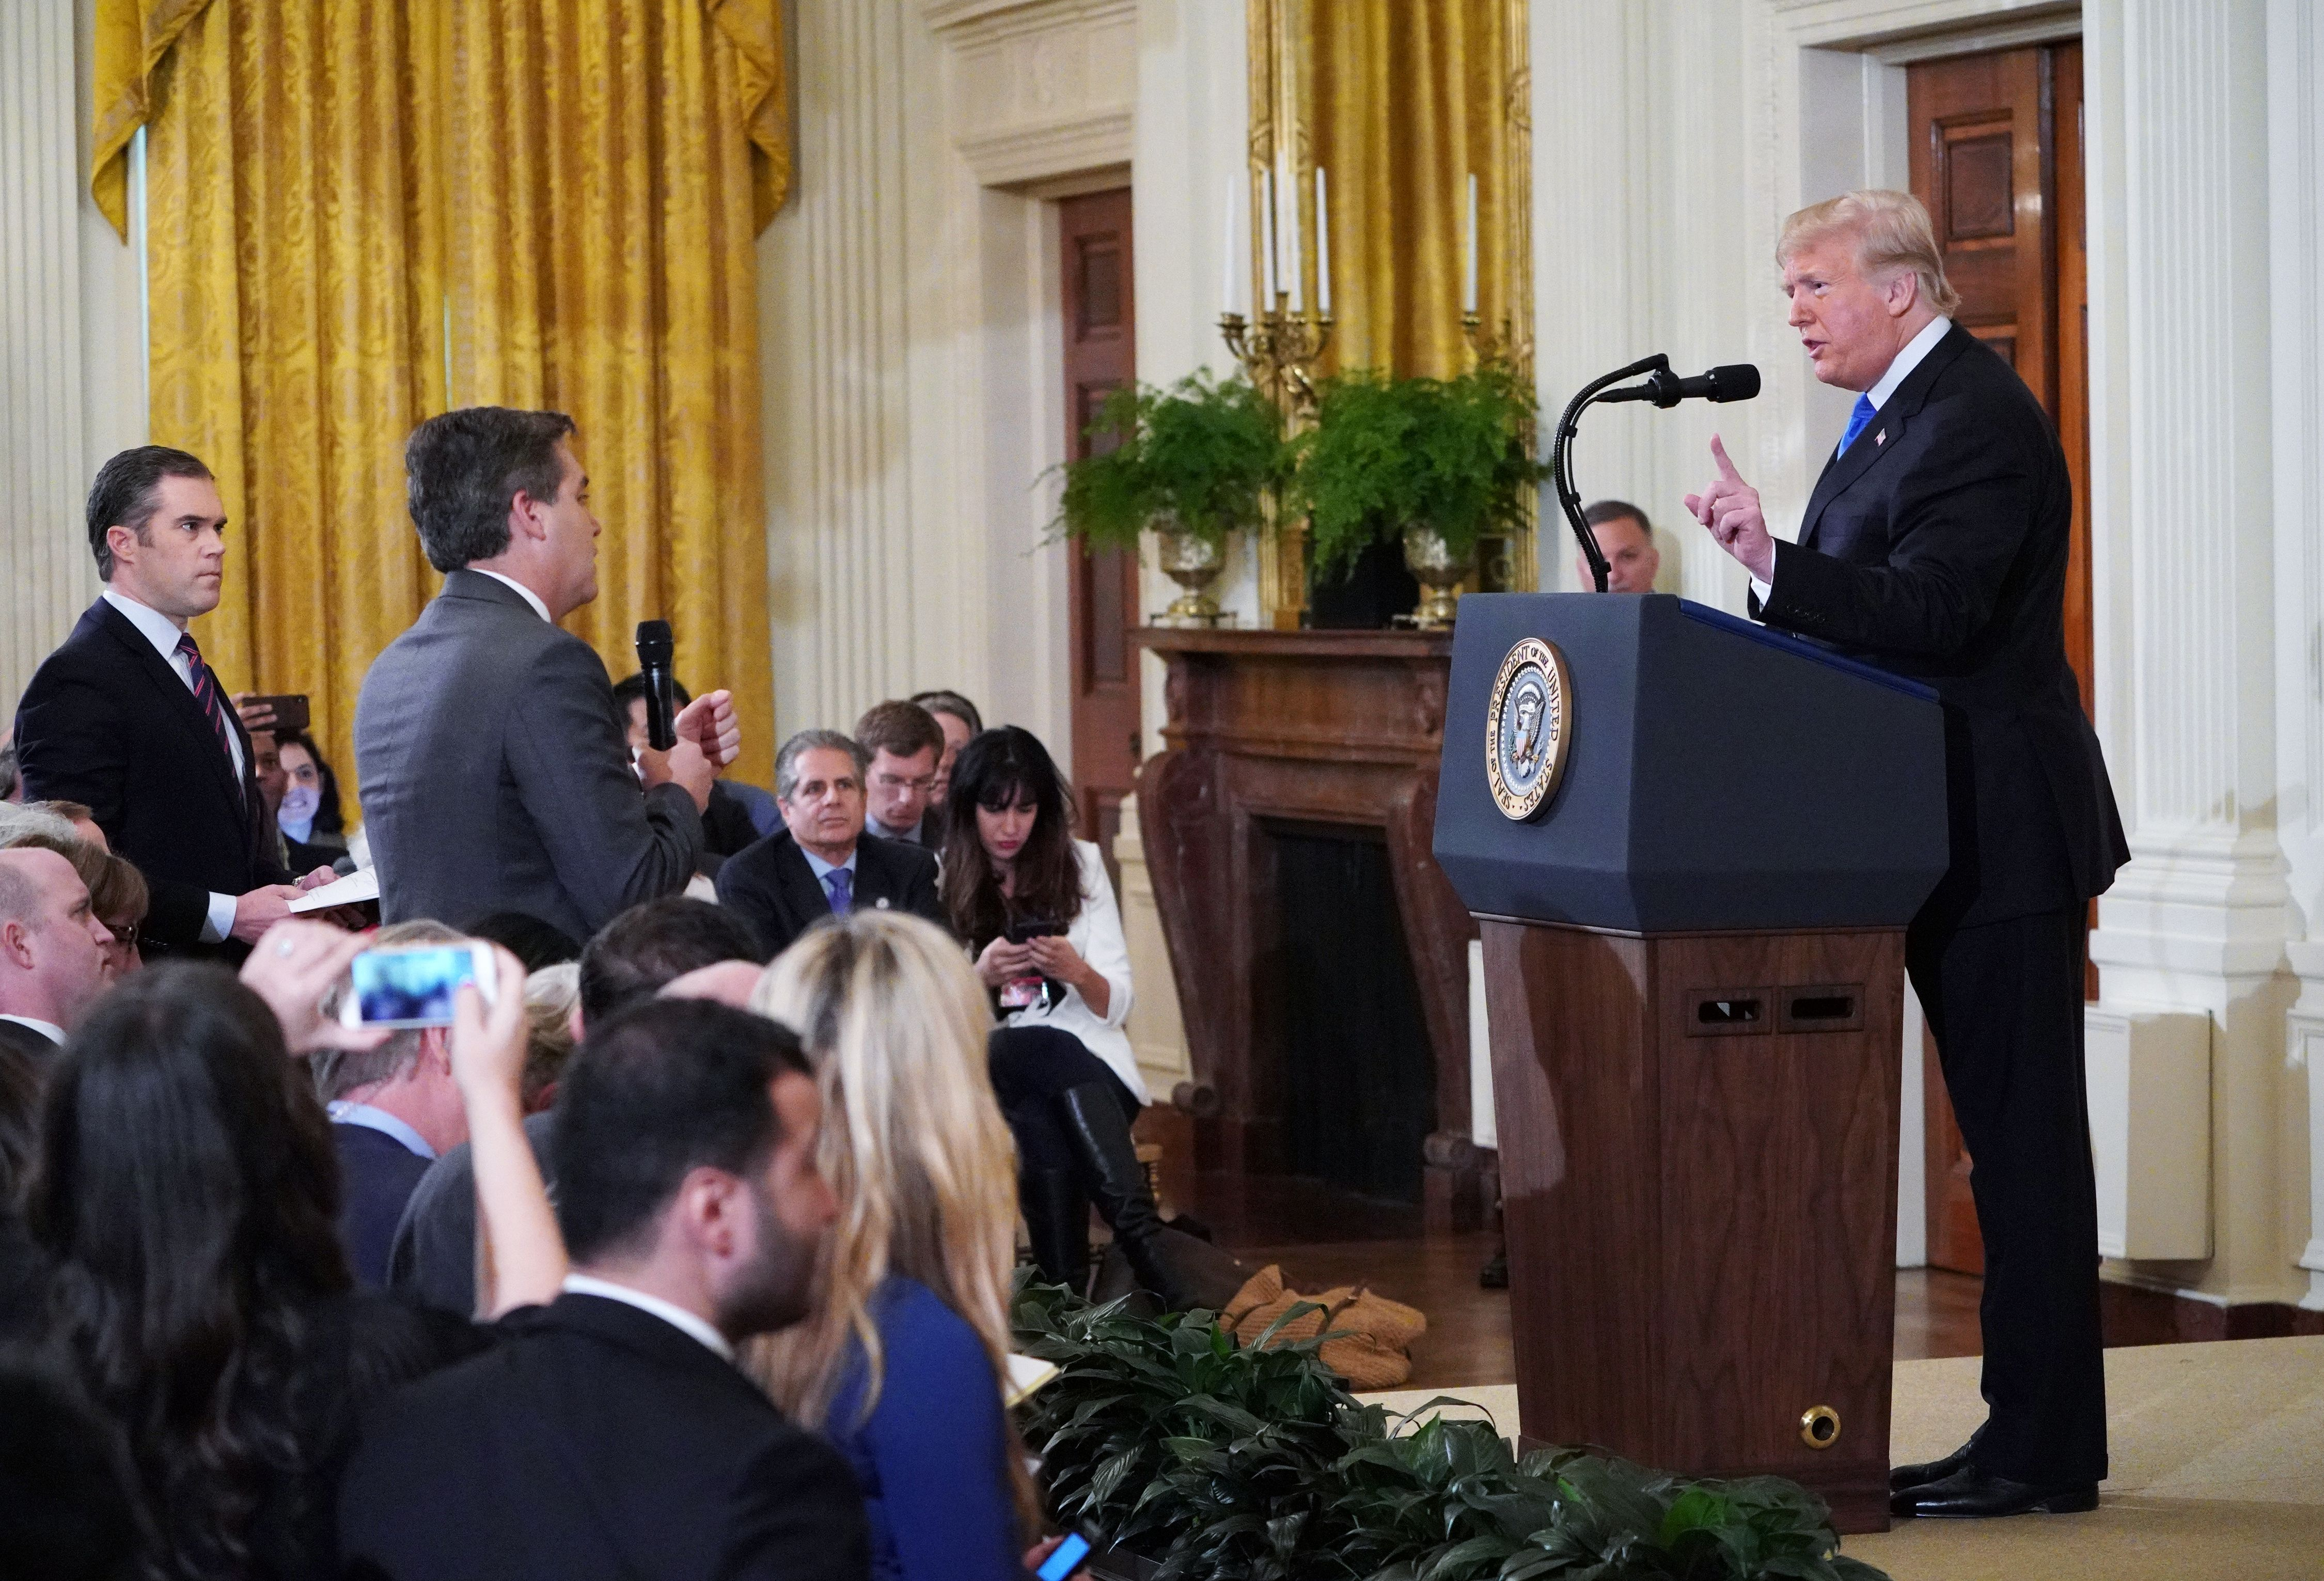 Trump gets into a heated exchange with CNN chief White House correspondent Jim Acosta (center) as NBC correspondent Peter Alexander (left) looks on.